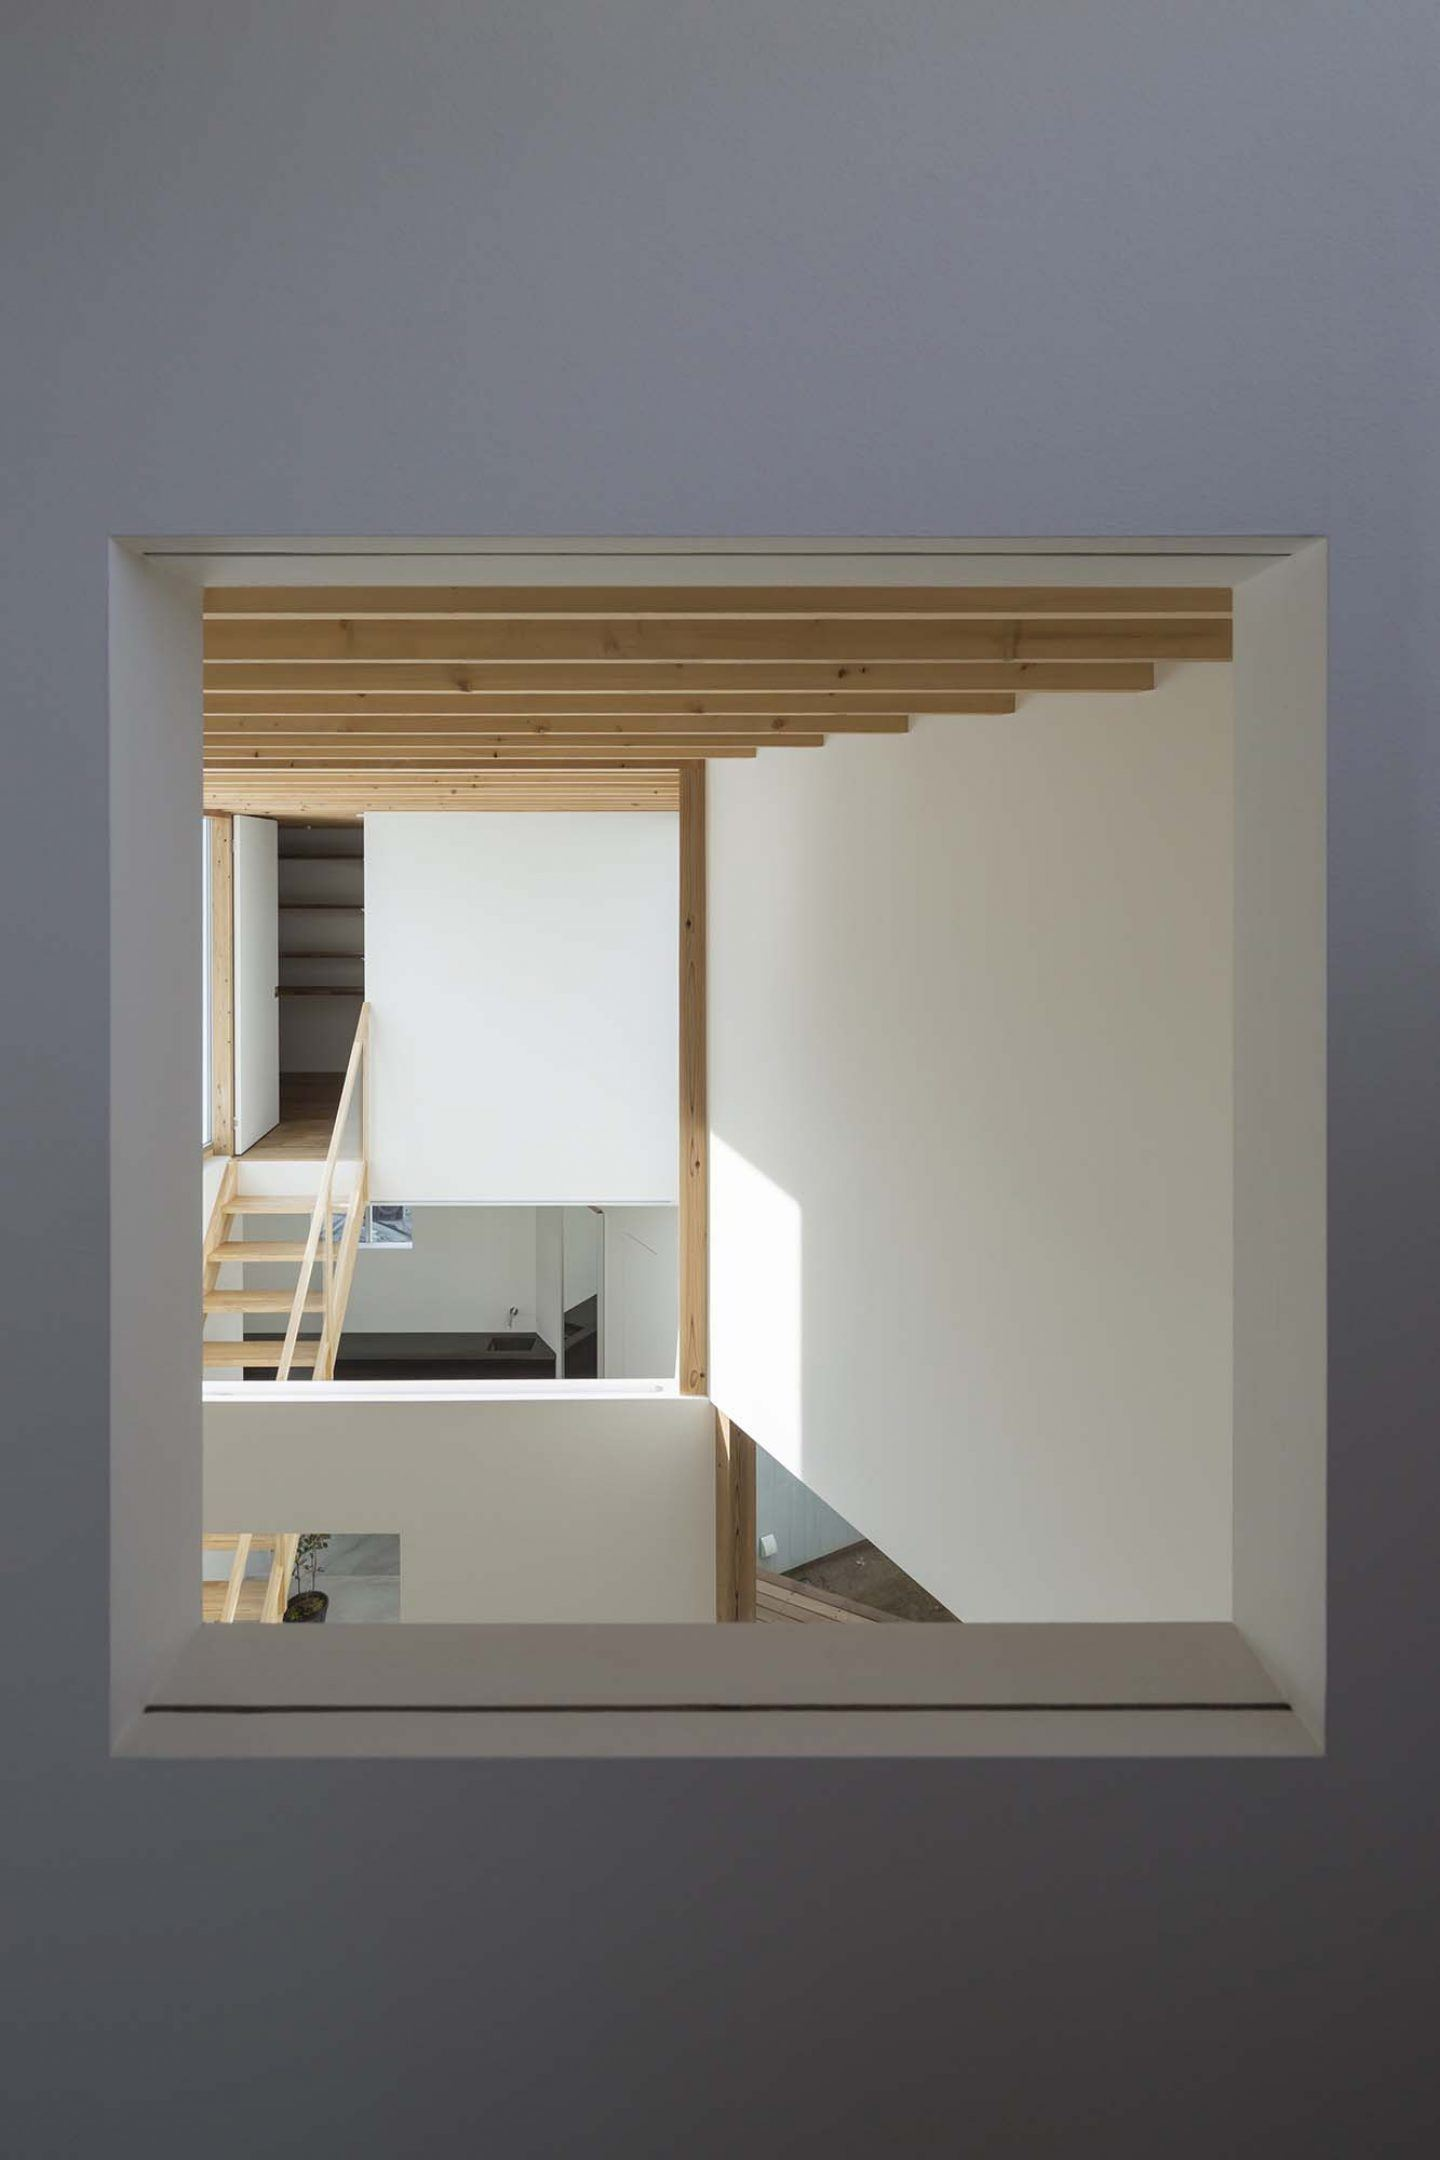 IGNANT-Architecture-Tato-Architects-House-In-Hokusetsu-19